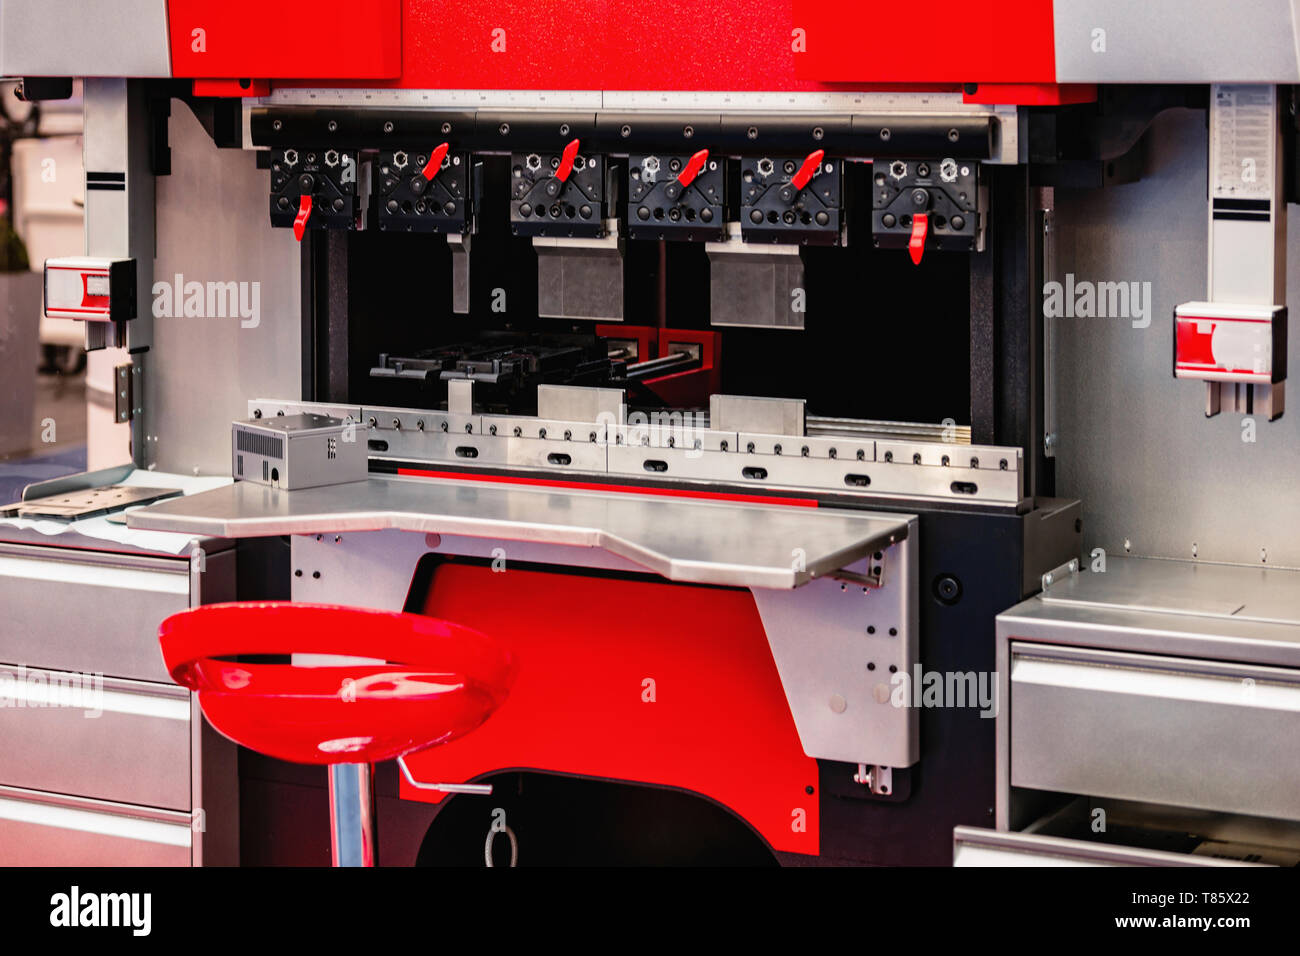 Ergonomic press brake - Stock Image